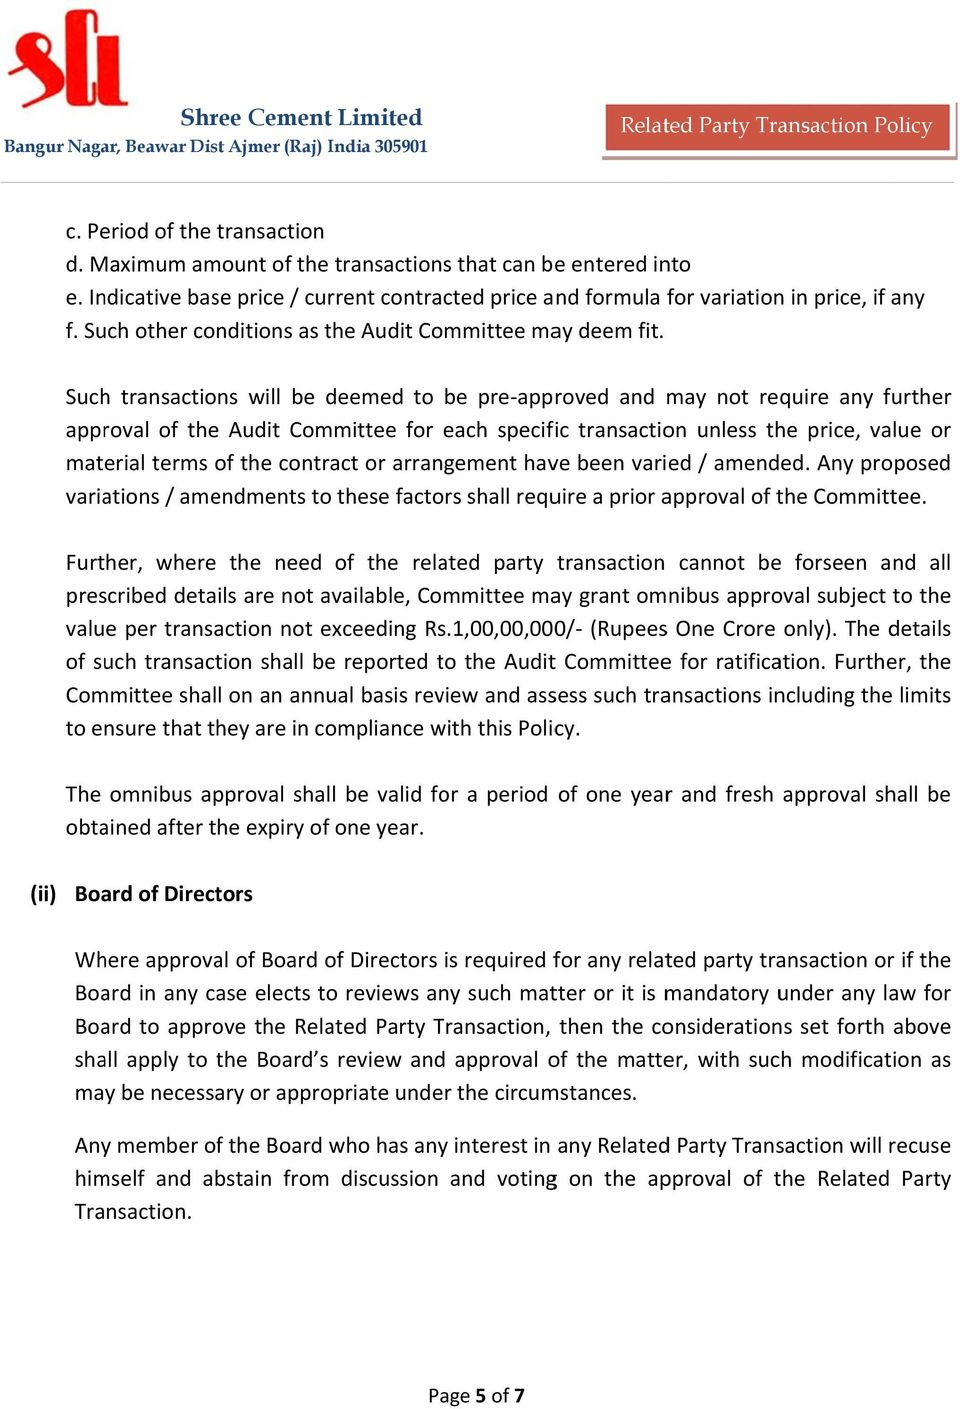 Such transactions will be deemed to be pre approved and may not require any further approval of the Audit Committee for each specific transaction unless the price, value or material terms of the